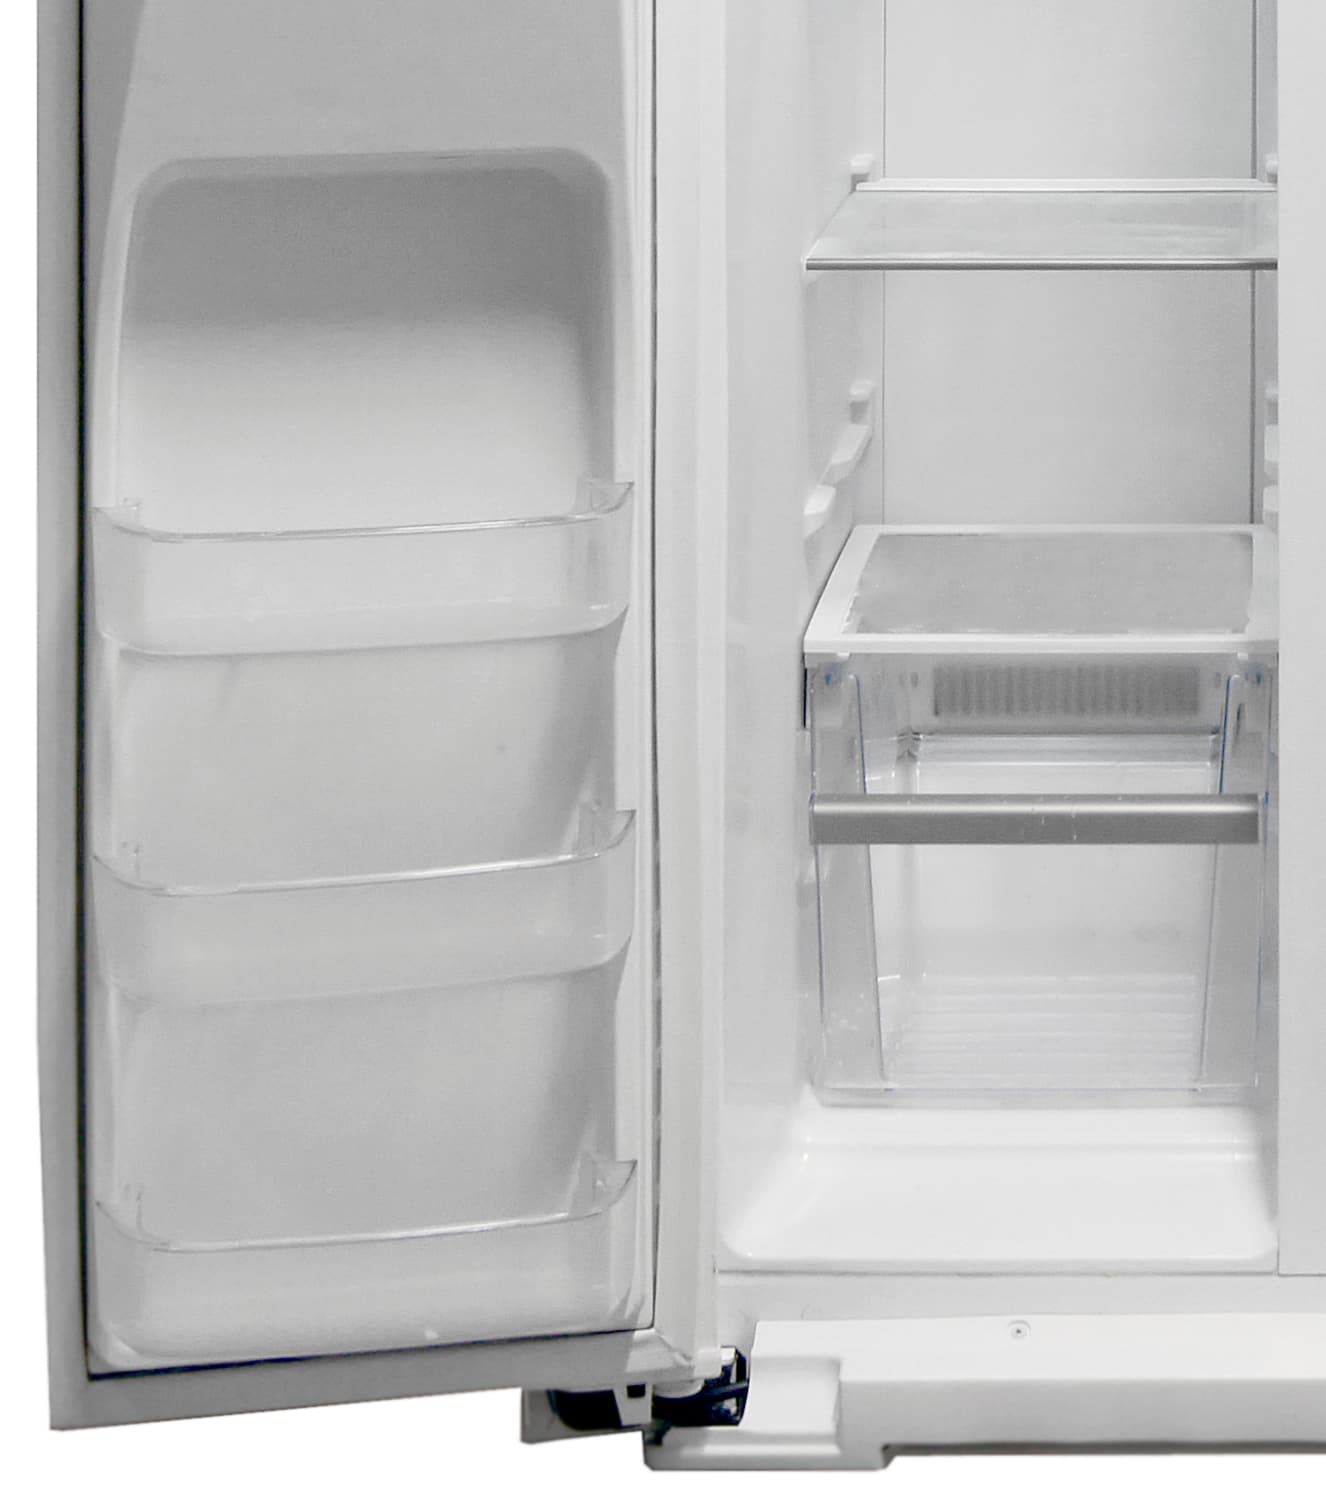 The lower half of the Kenmore Elite 51162's freezer boasts its only drawer, as well as three shallow shelves on the door.